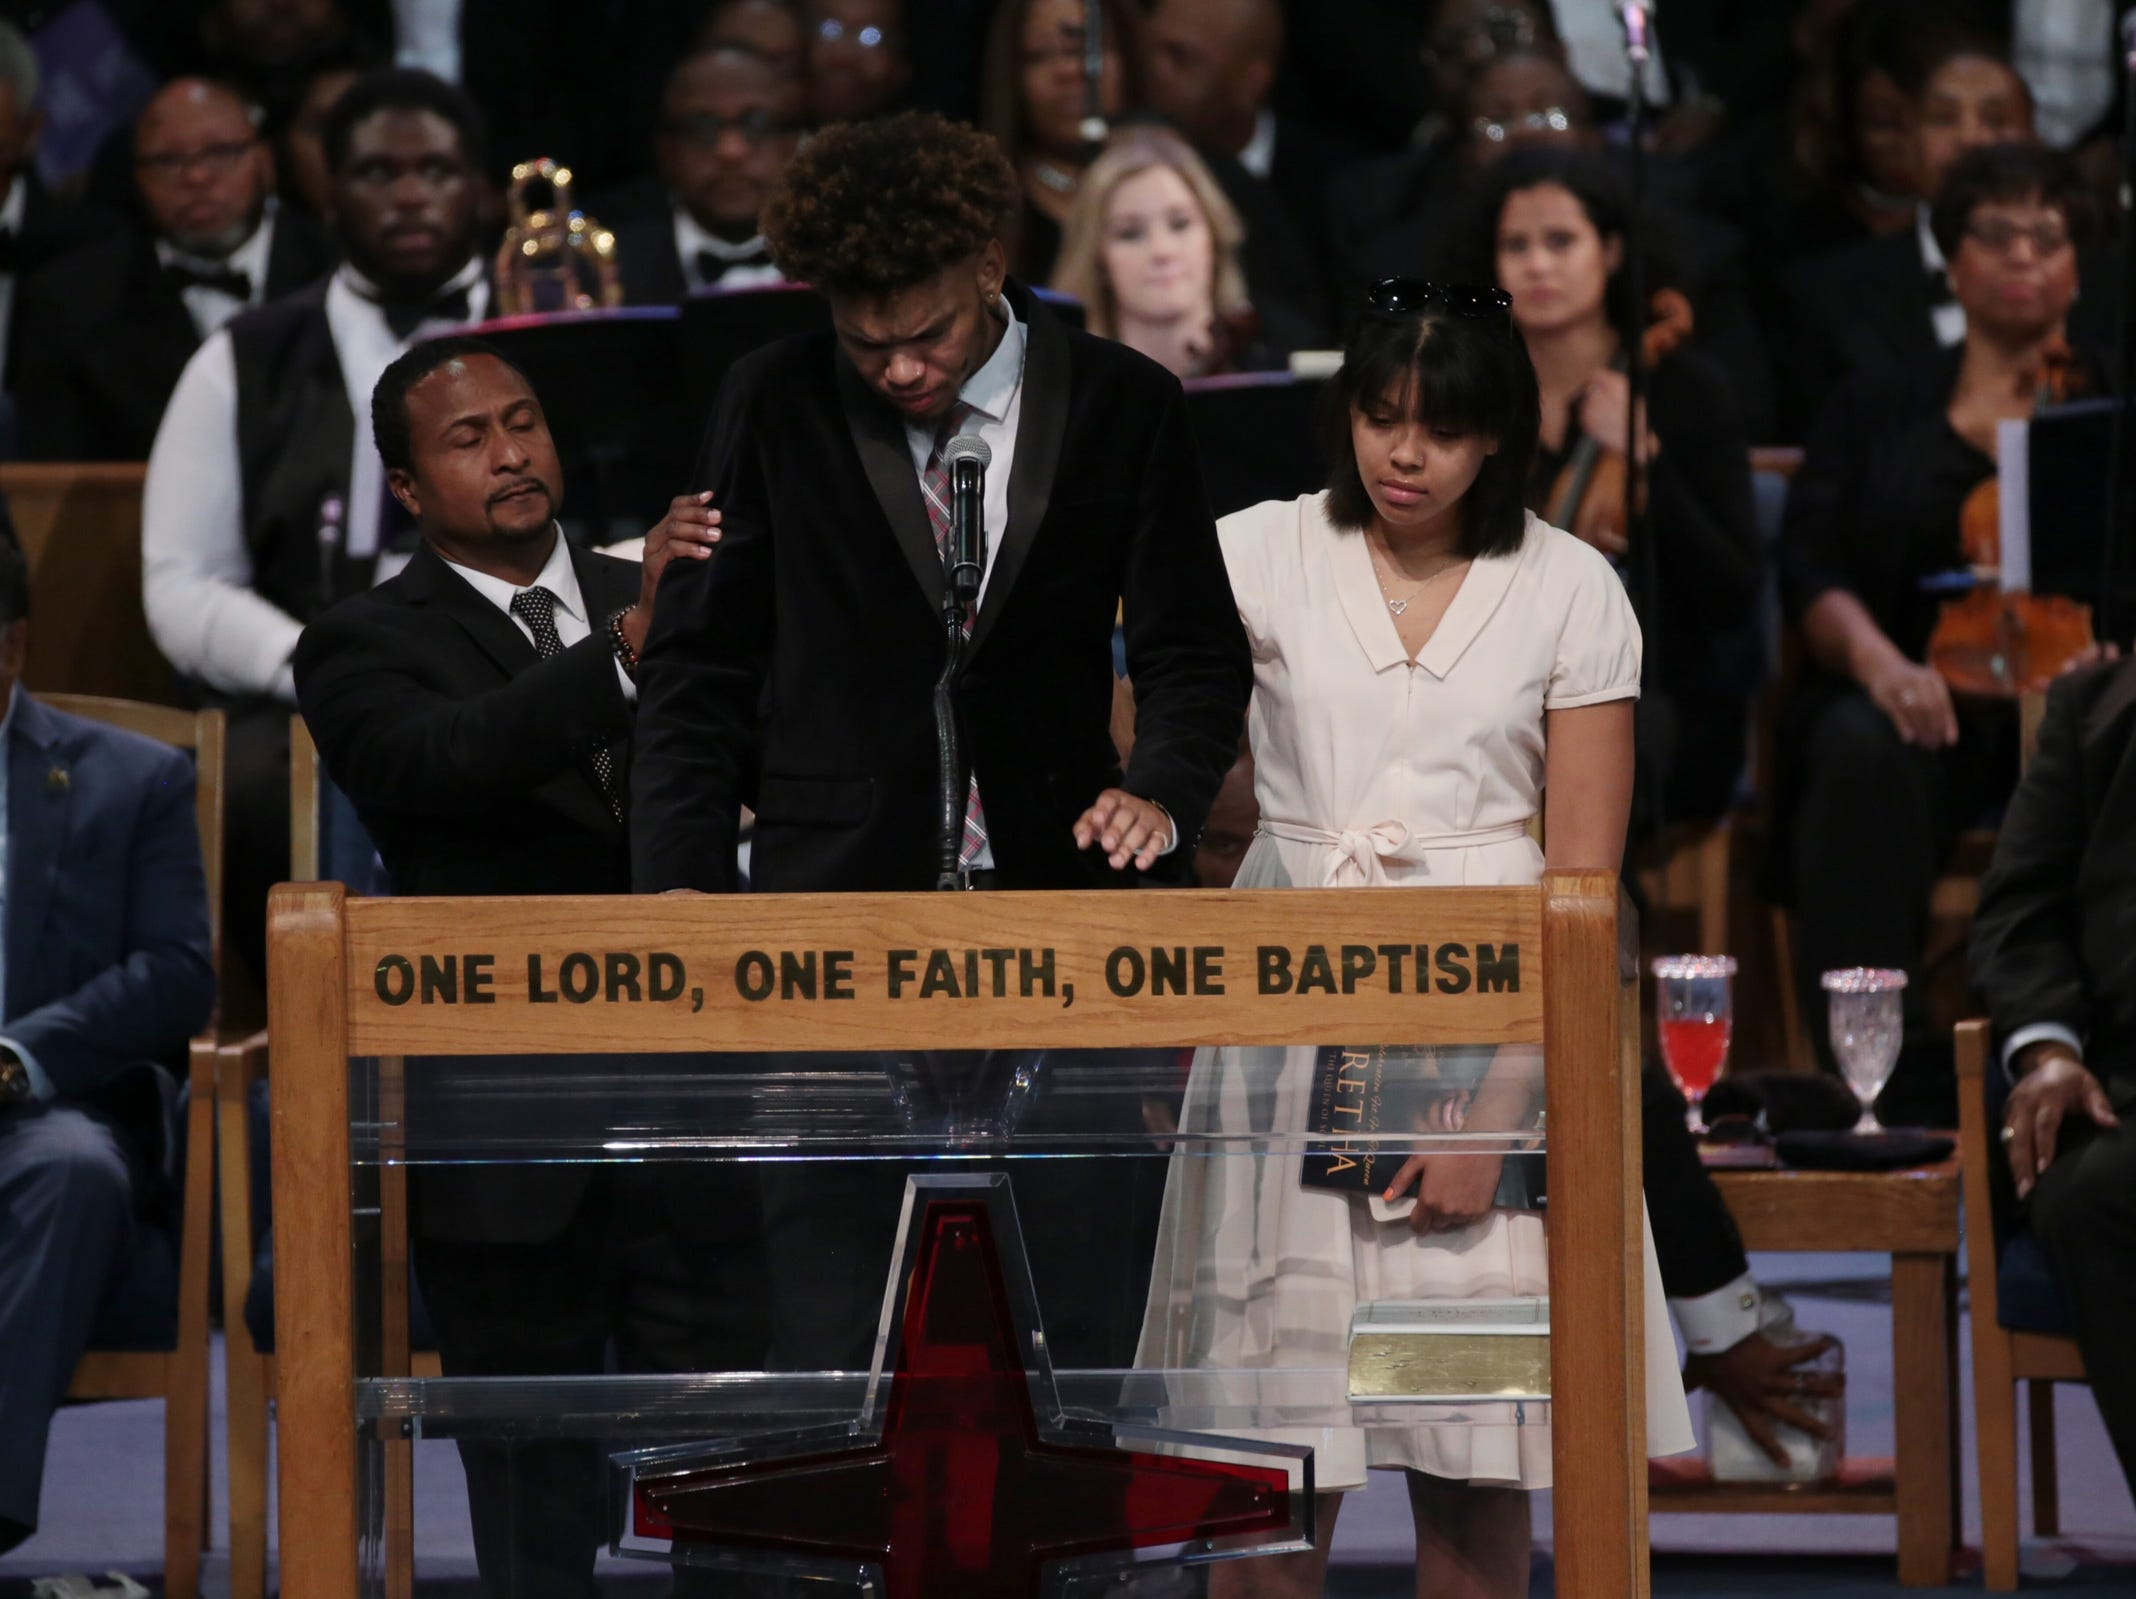 (From left) Aretha Franklin's nephew Vaughn Franklin and her granddaughter Victorie Franklin comfort her grandson Jordan Franklin as he speaks during the funeral for the late Aretha Franklin at Greater Grace Temple in Detroit on Friday, August 31, 2018.